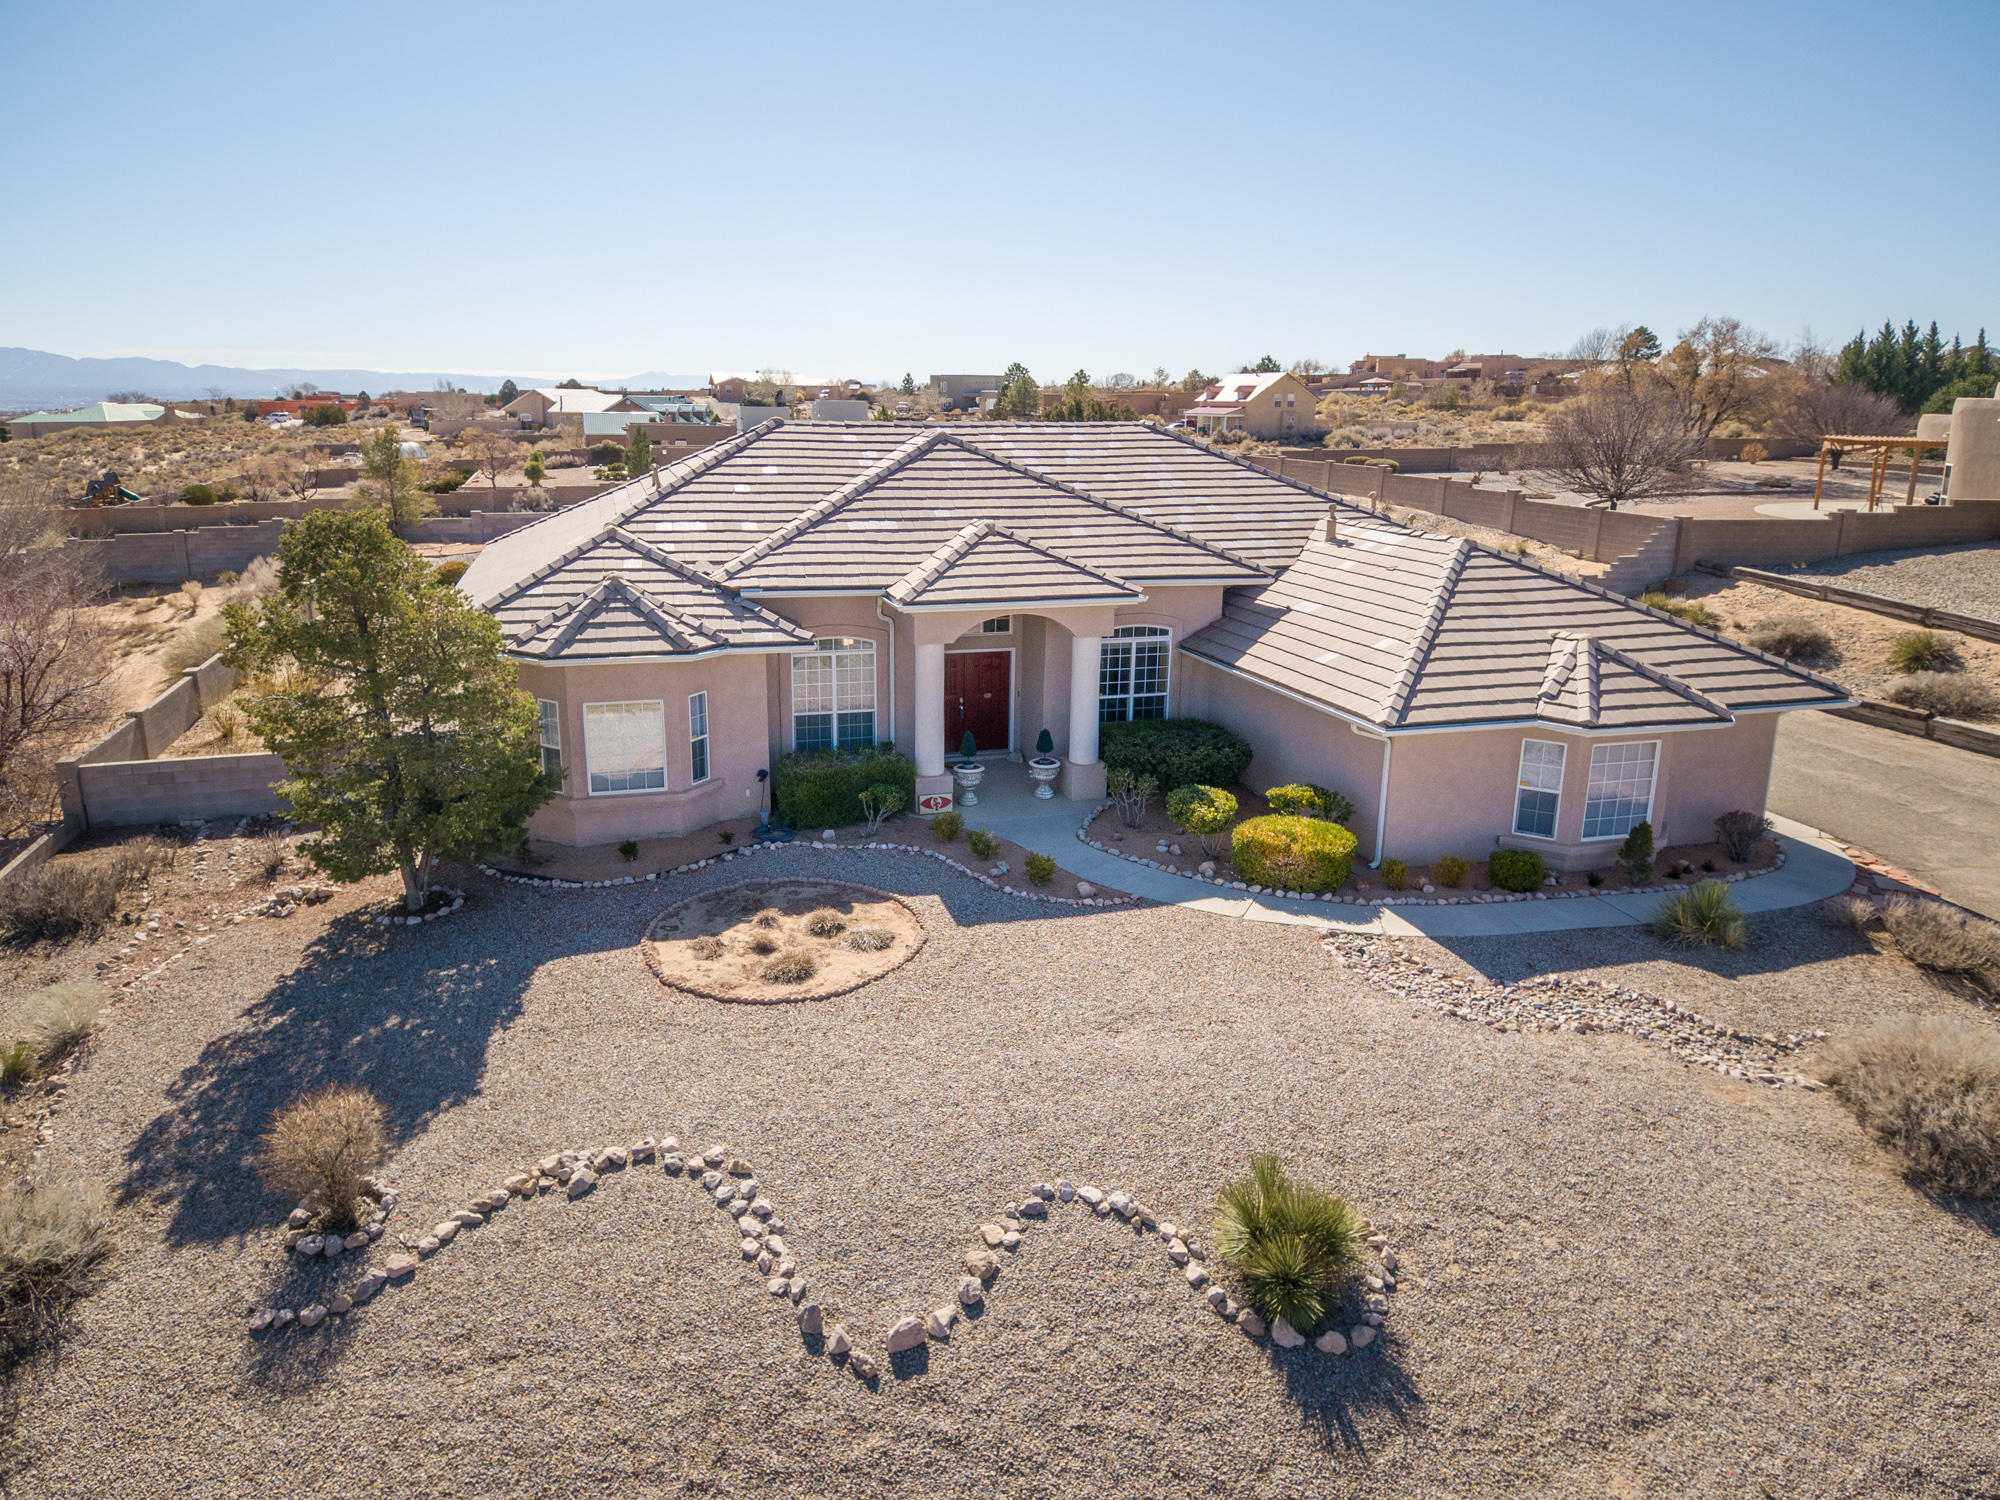 Elegant, true one story custom home in Rio Rancho Estates., with magnificent views (sweeping views) of the Sendia's on a 1/2 acre lot with back yard access. One owner home, Pride of ownership. This spacious home has soaring ceilings, light-filled rooms, two living areas, formal dining room, a well appointed kitchen with breakfast nook, stainless appliances, ample cabinets and countertops. Four generous bedrooms. Porcelain wood grain tile throughout. 2x6 Frame construction. Wonderful outdoor living spaces adds to the beauty of this home, covered patio facing east to enjoy the VIEWS of the Sandias. Must see home!